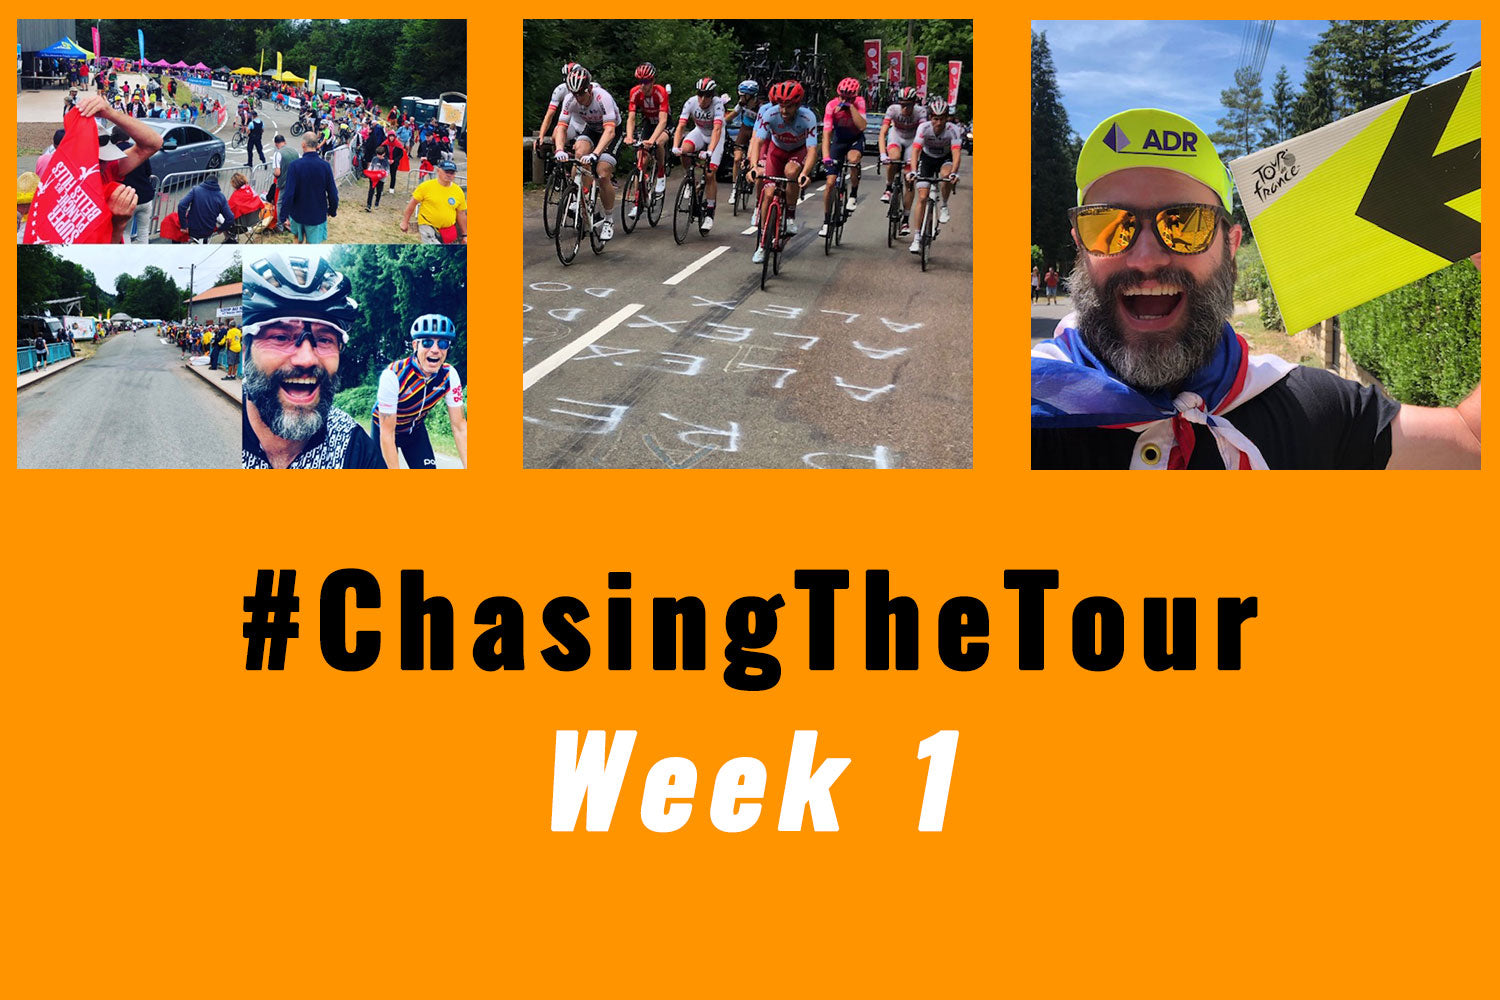 Chasing the Tour - Week 1